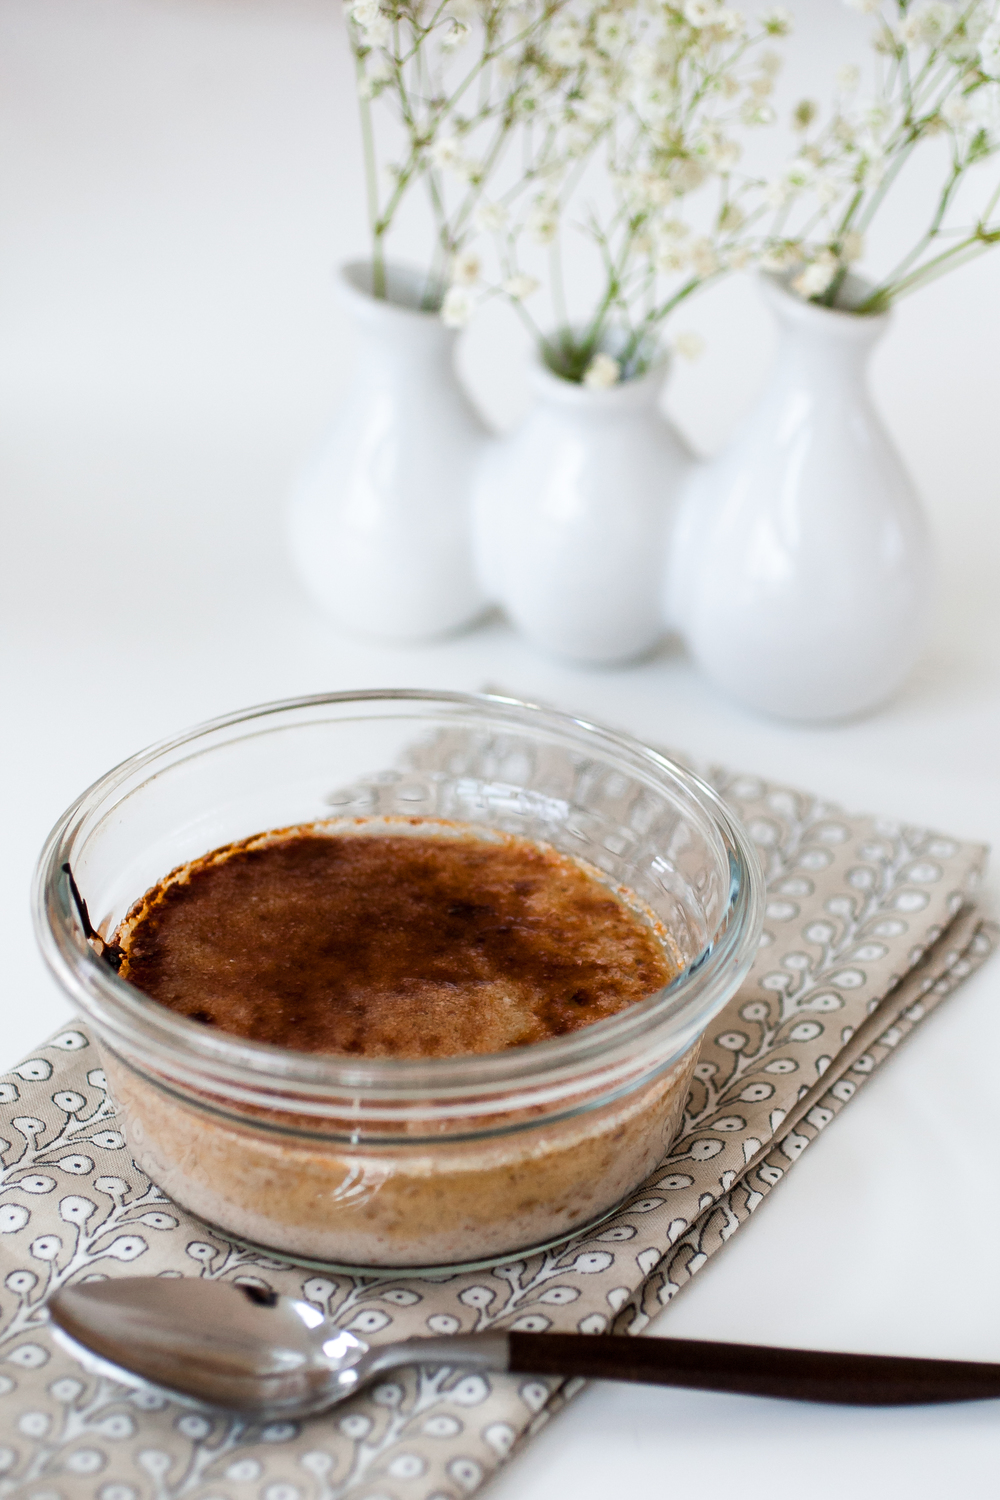 Produce On Parade - Vegan Cardamom & Clove Creme Brulee - A crème brulee you can feel good about! Made cruelty-free with tofu, cashews, and comforting spices, this unique dessert is super easy, light on the sugar, and perfect for any special occasion.